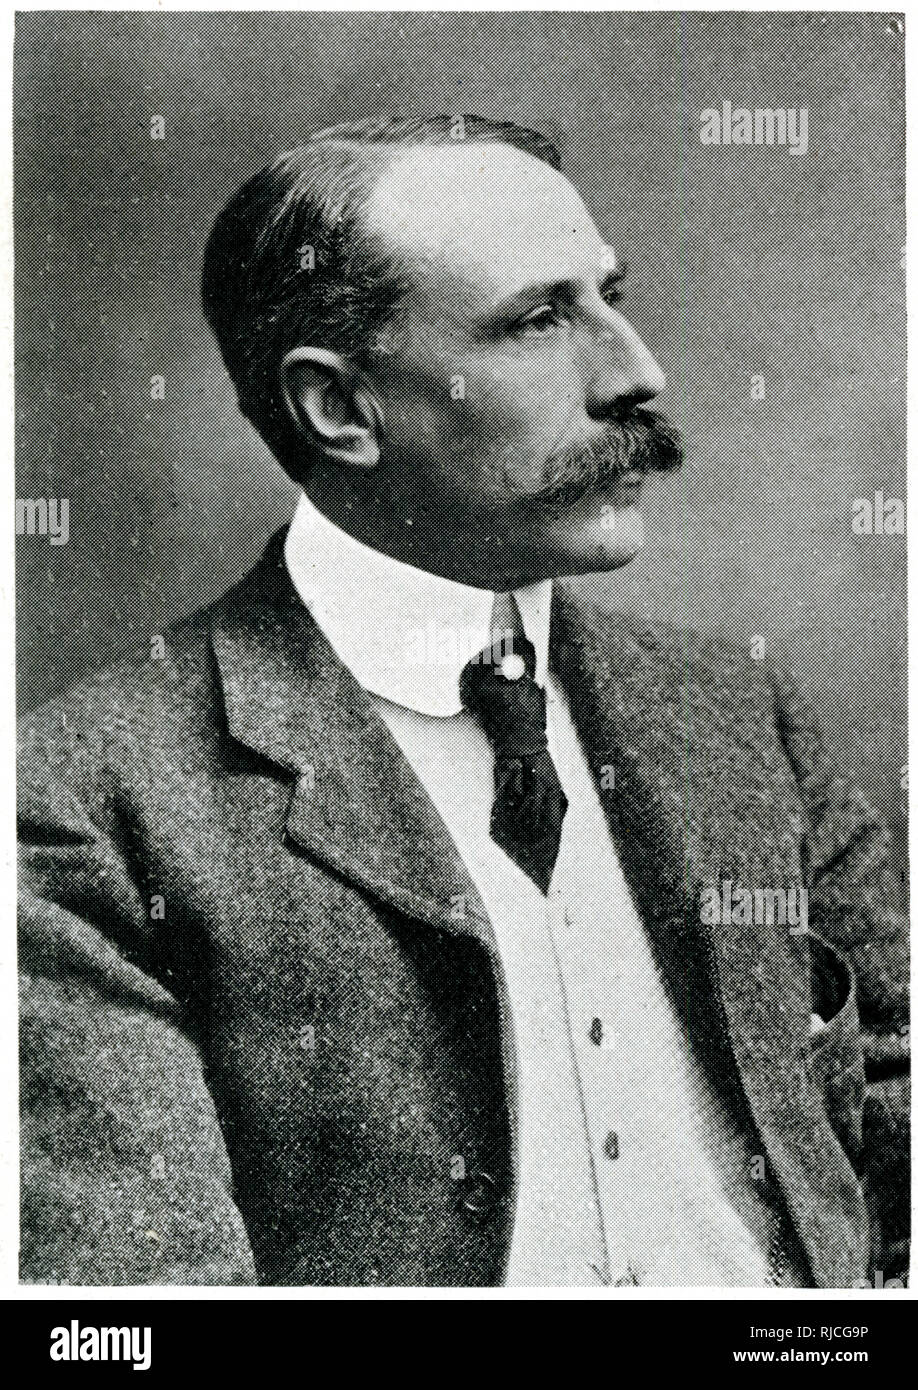 Sir Edward Elgar (1857-1934), English composer at the time of the performance of his oratorio 'The Dream of Gerontius' at the Worcester Music Festival. Stock Photo